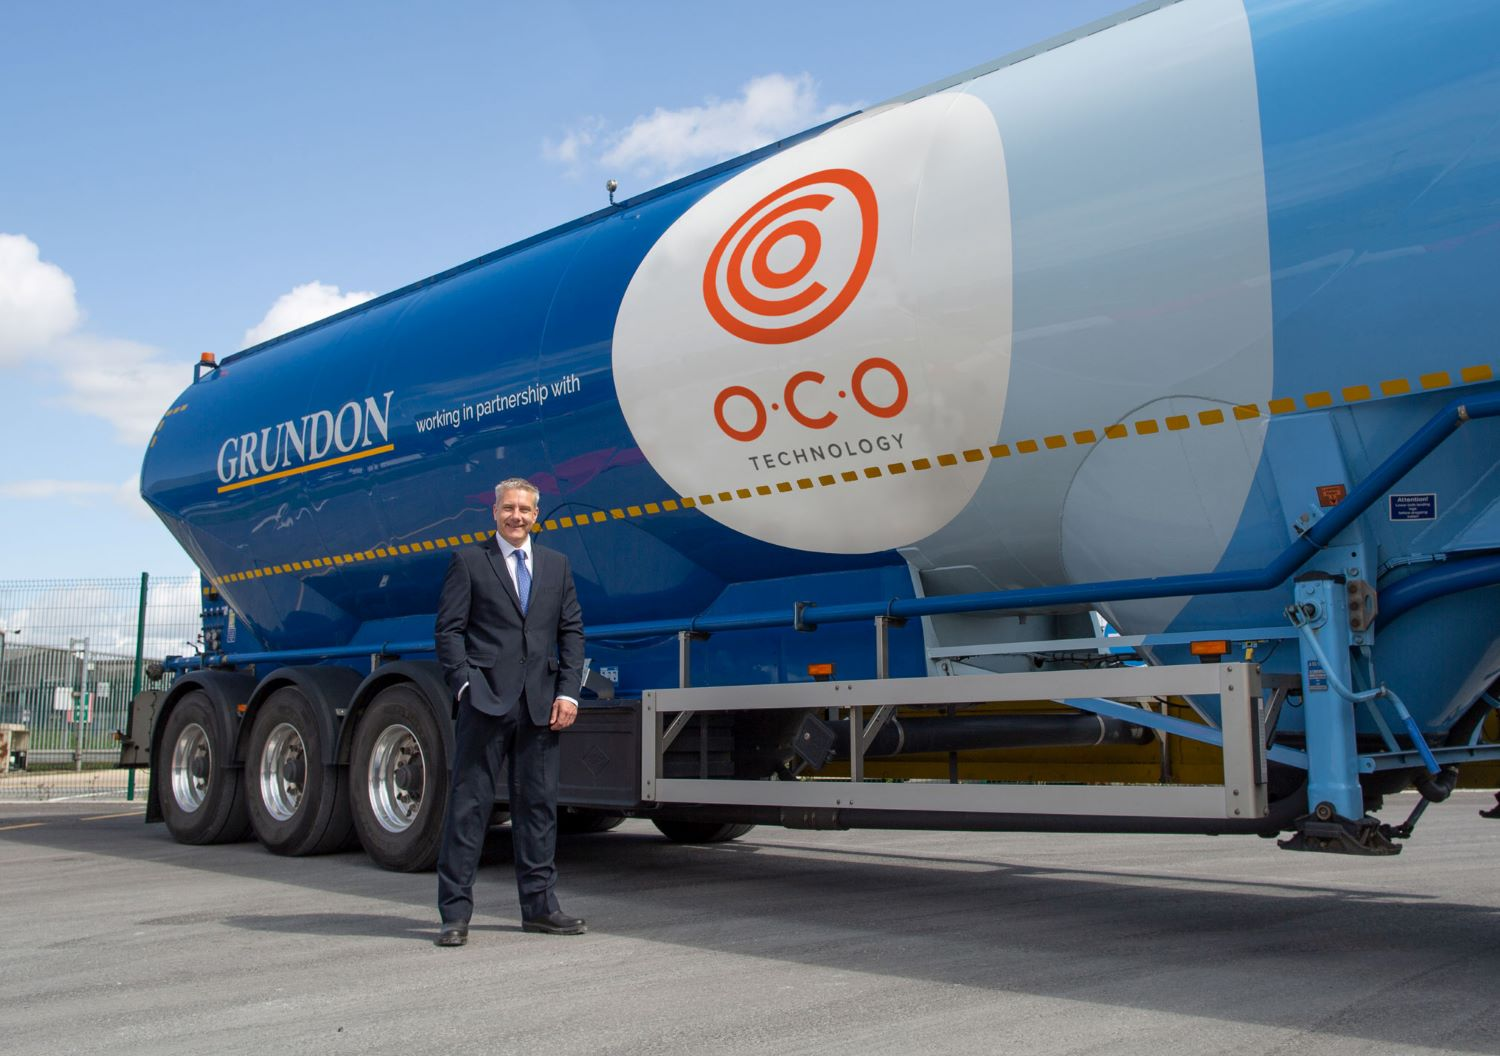 Steve Greig, managing director of O.C.O Technology, with one of the dual branded tankers